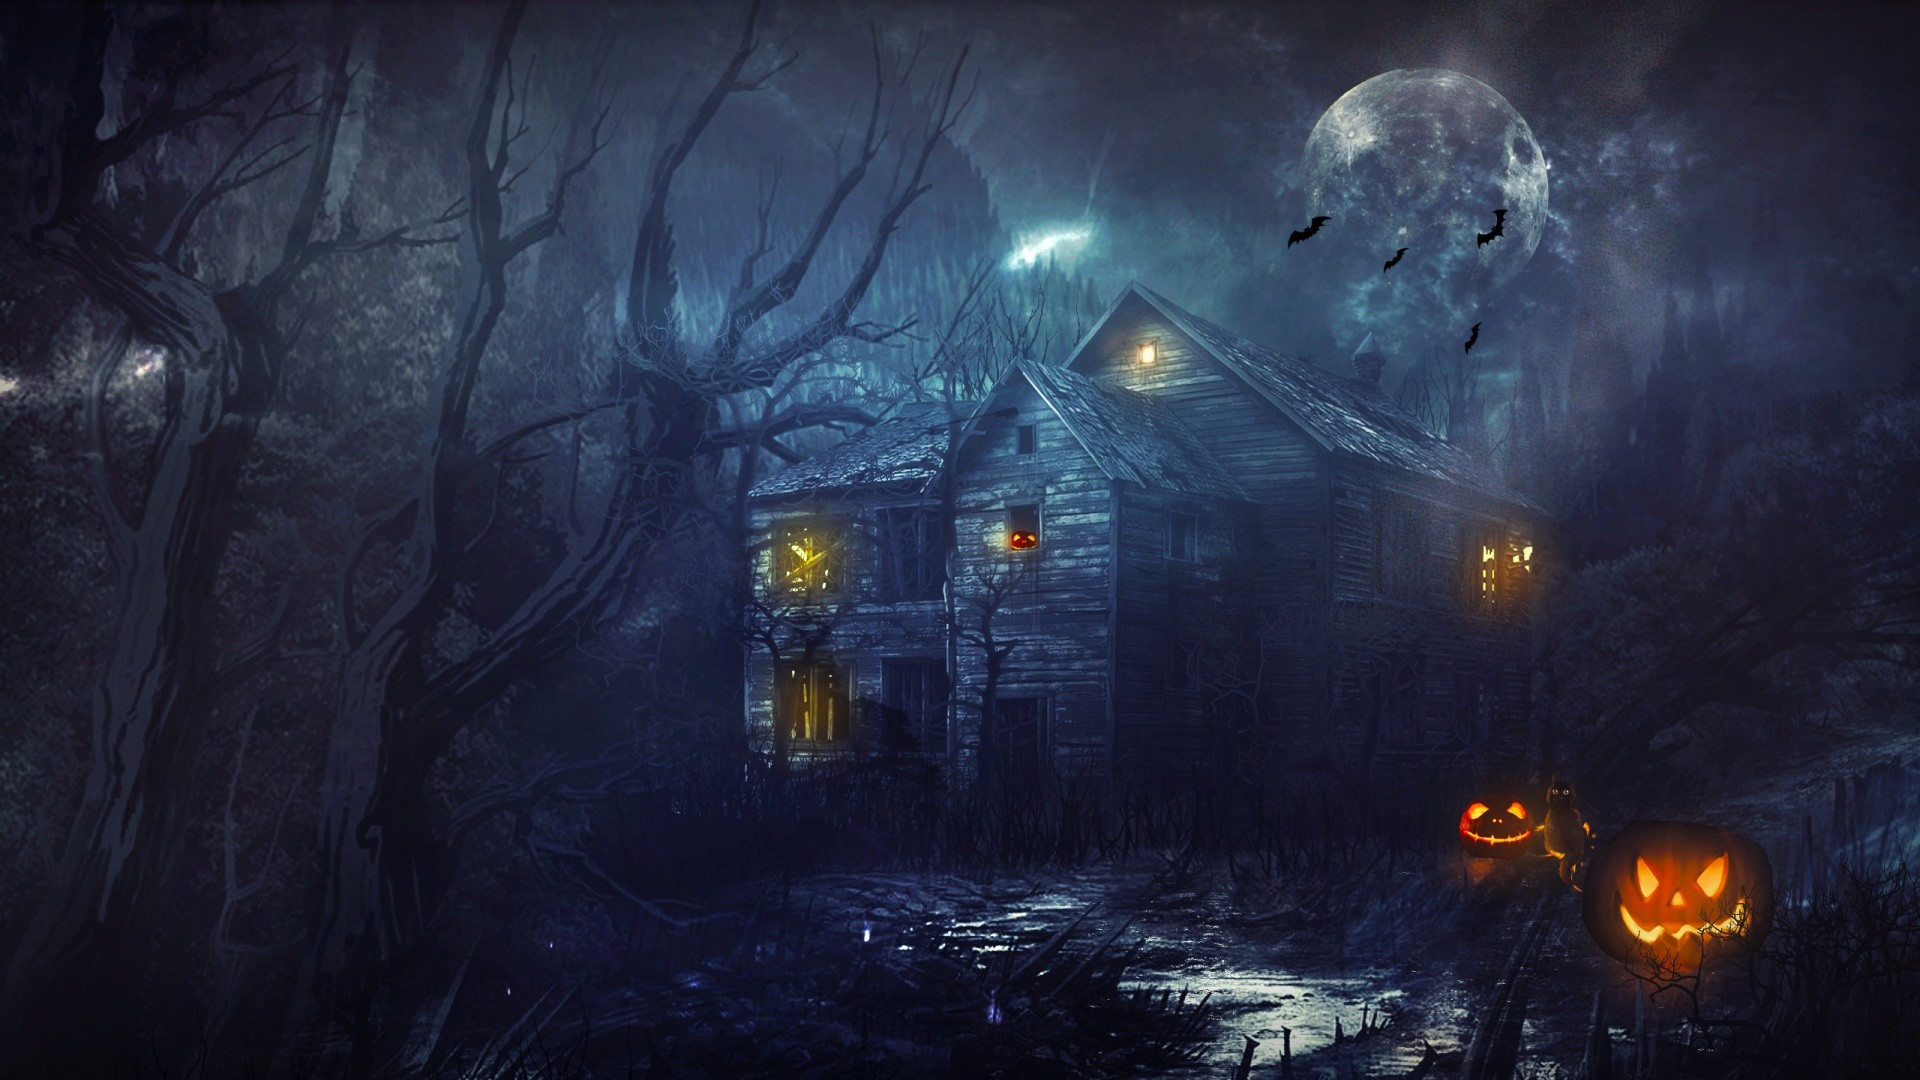 Haunted House 3d Live Wallpaper Download 3d Haunted House Wallpaper 59 Images